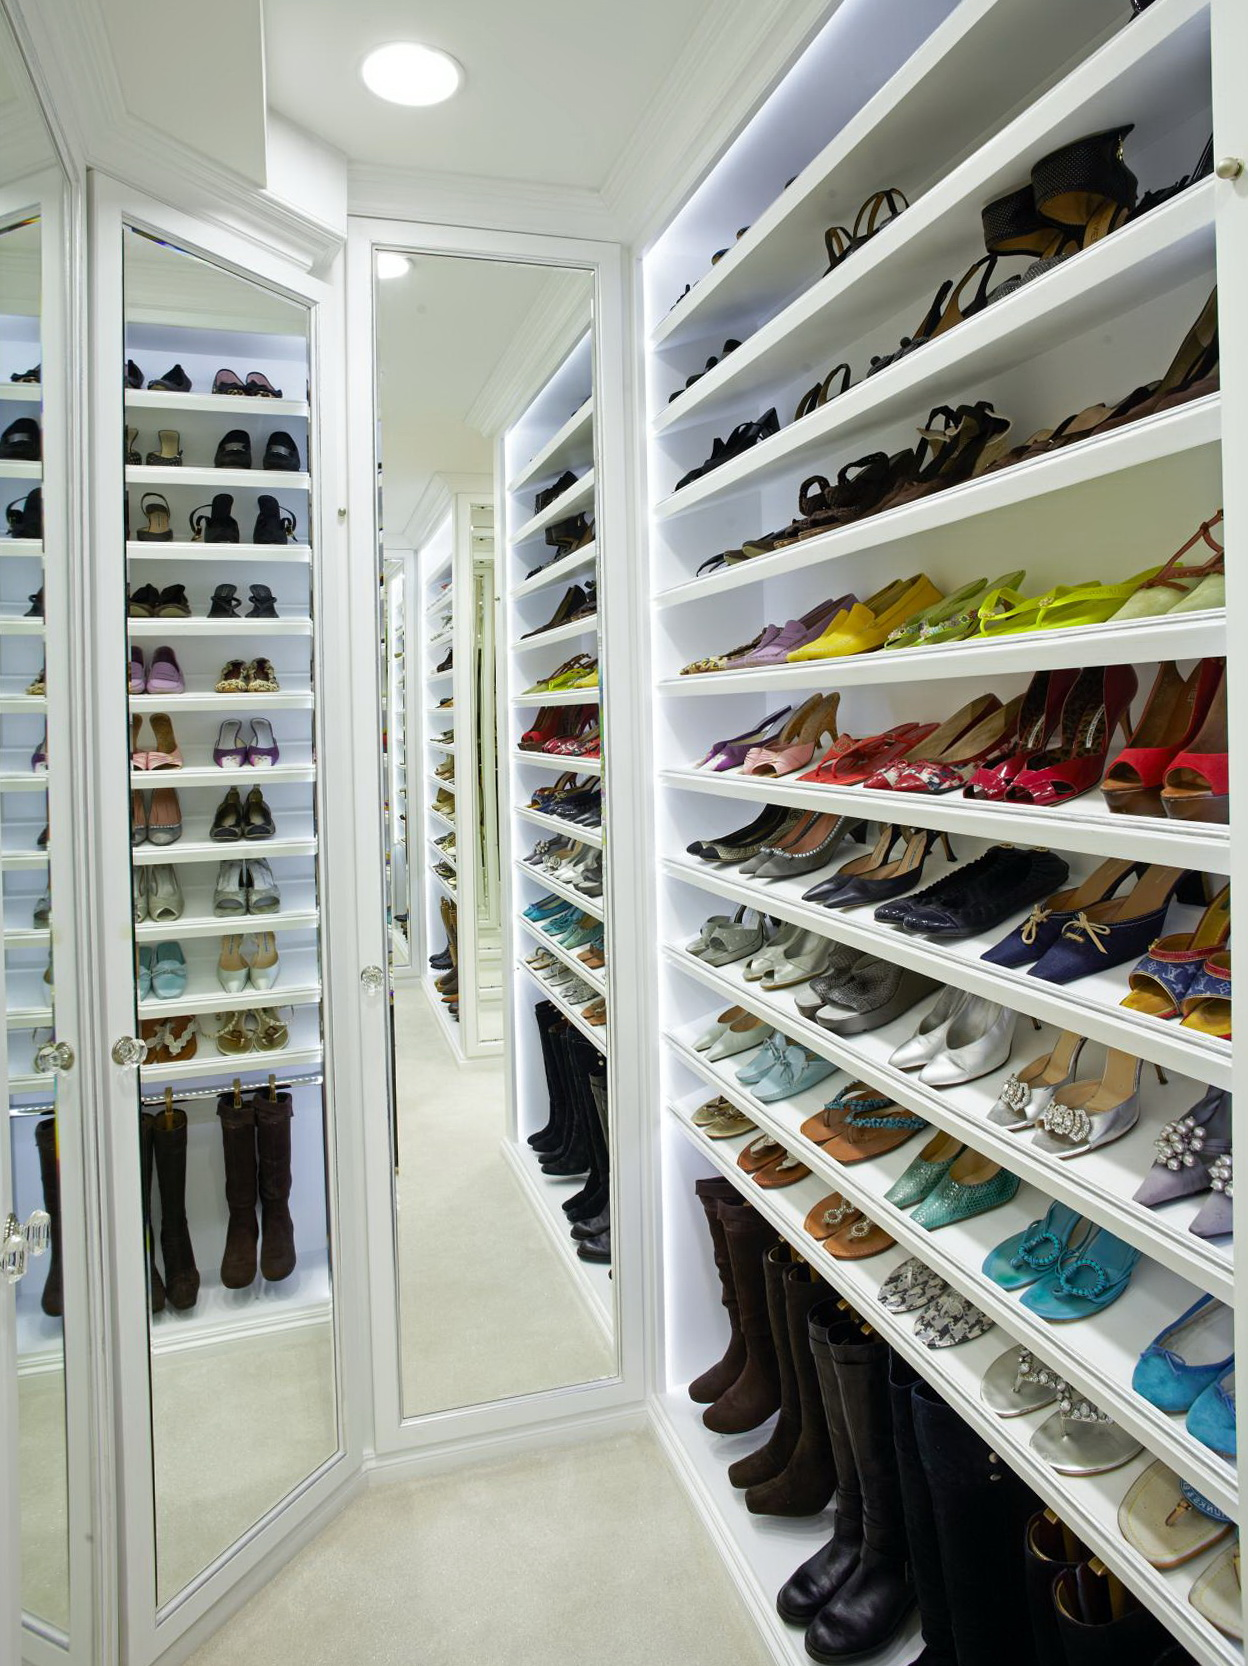 Closet Shoe Rack Dimensions Home Design Ideas